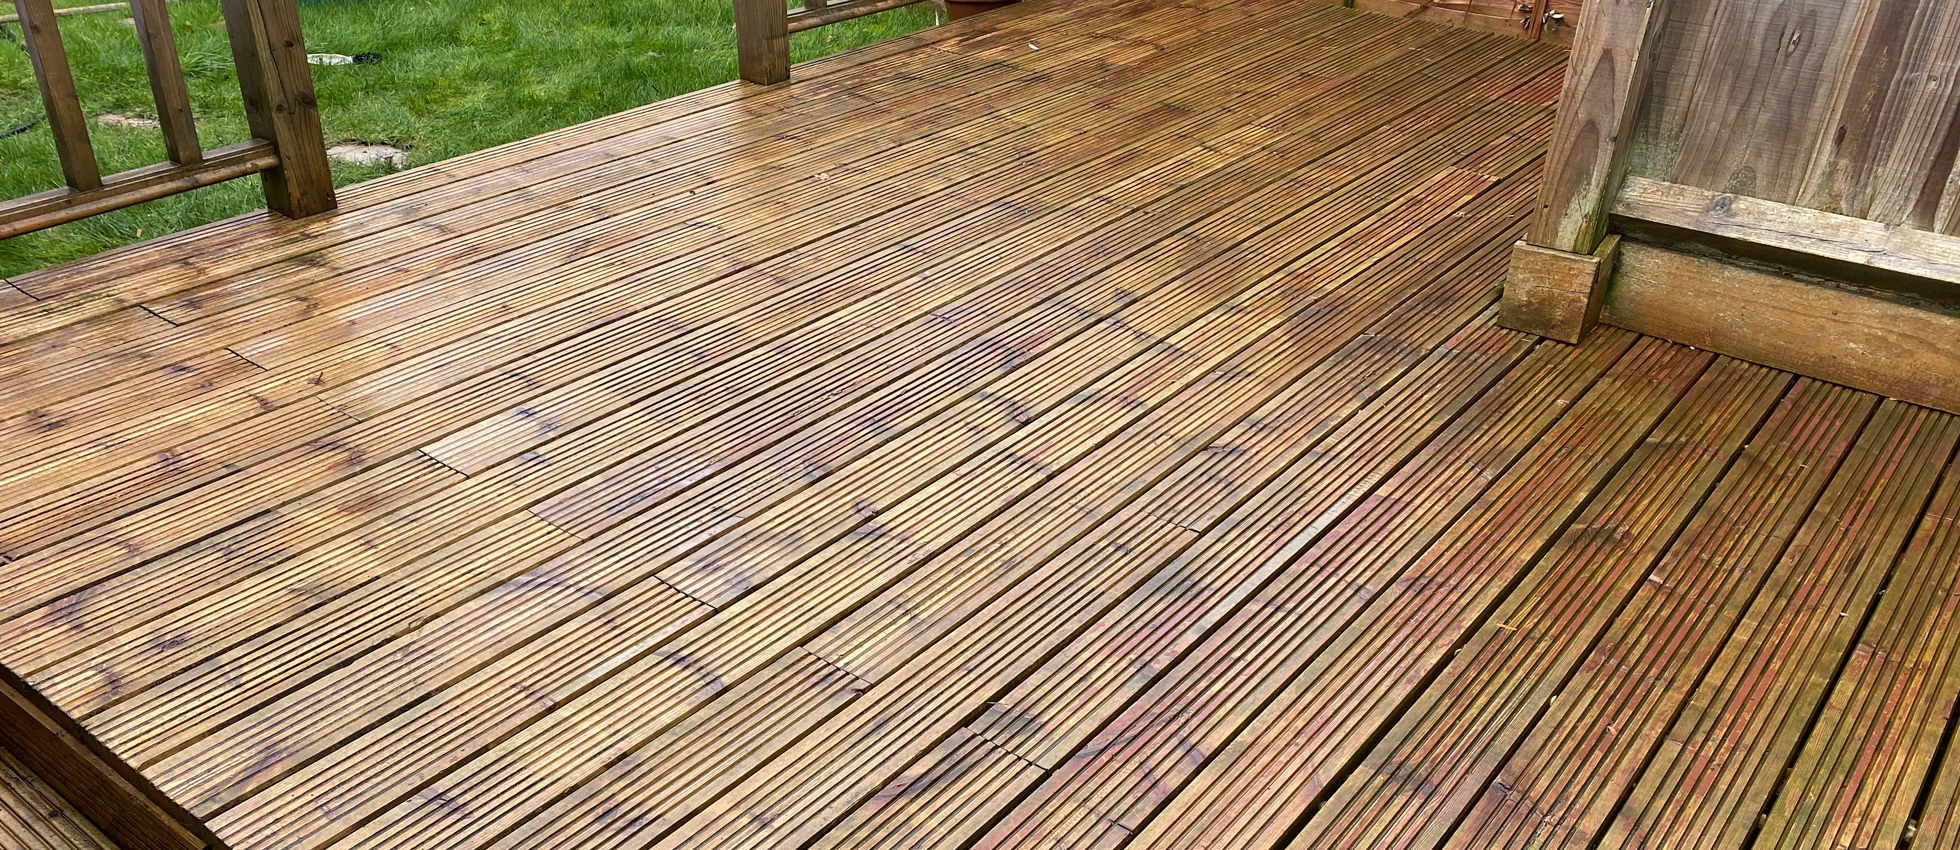 Patios and <br>Decking Cleaning